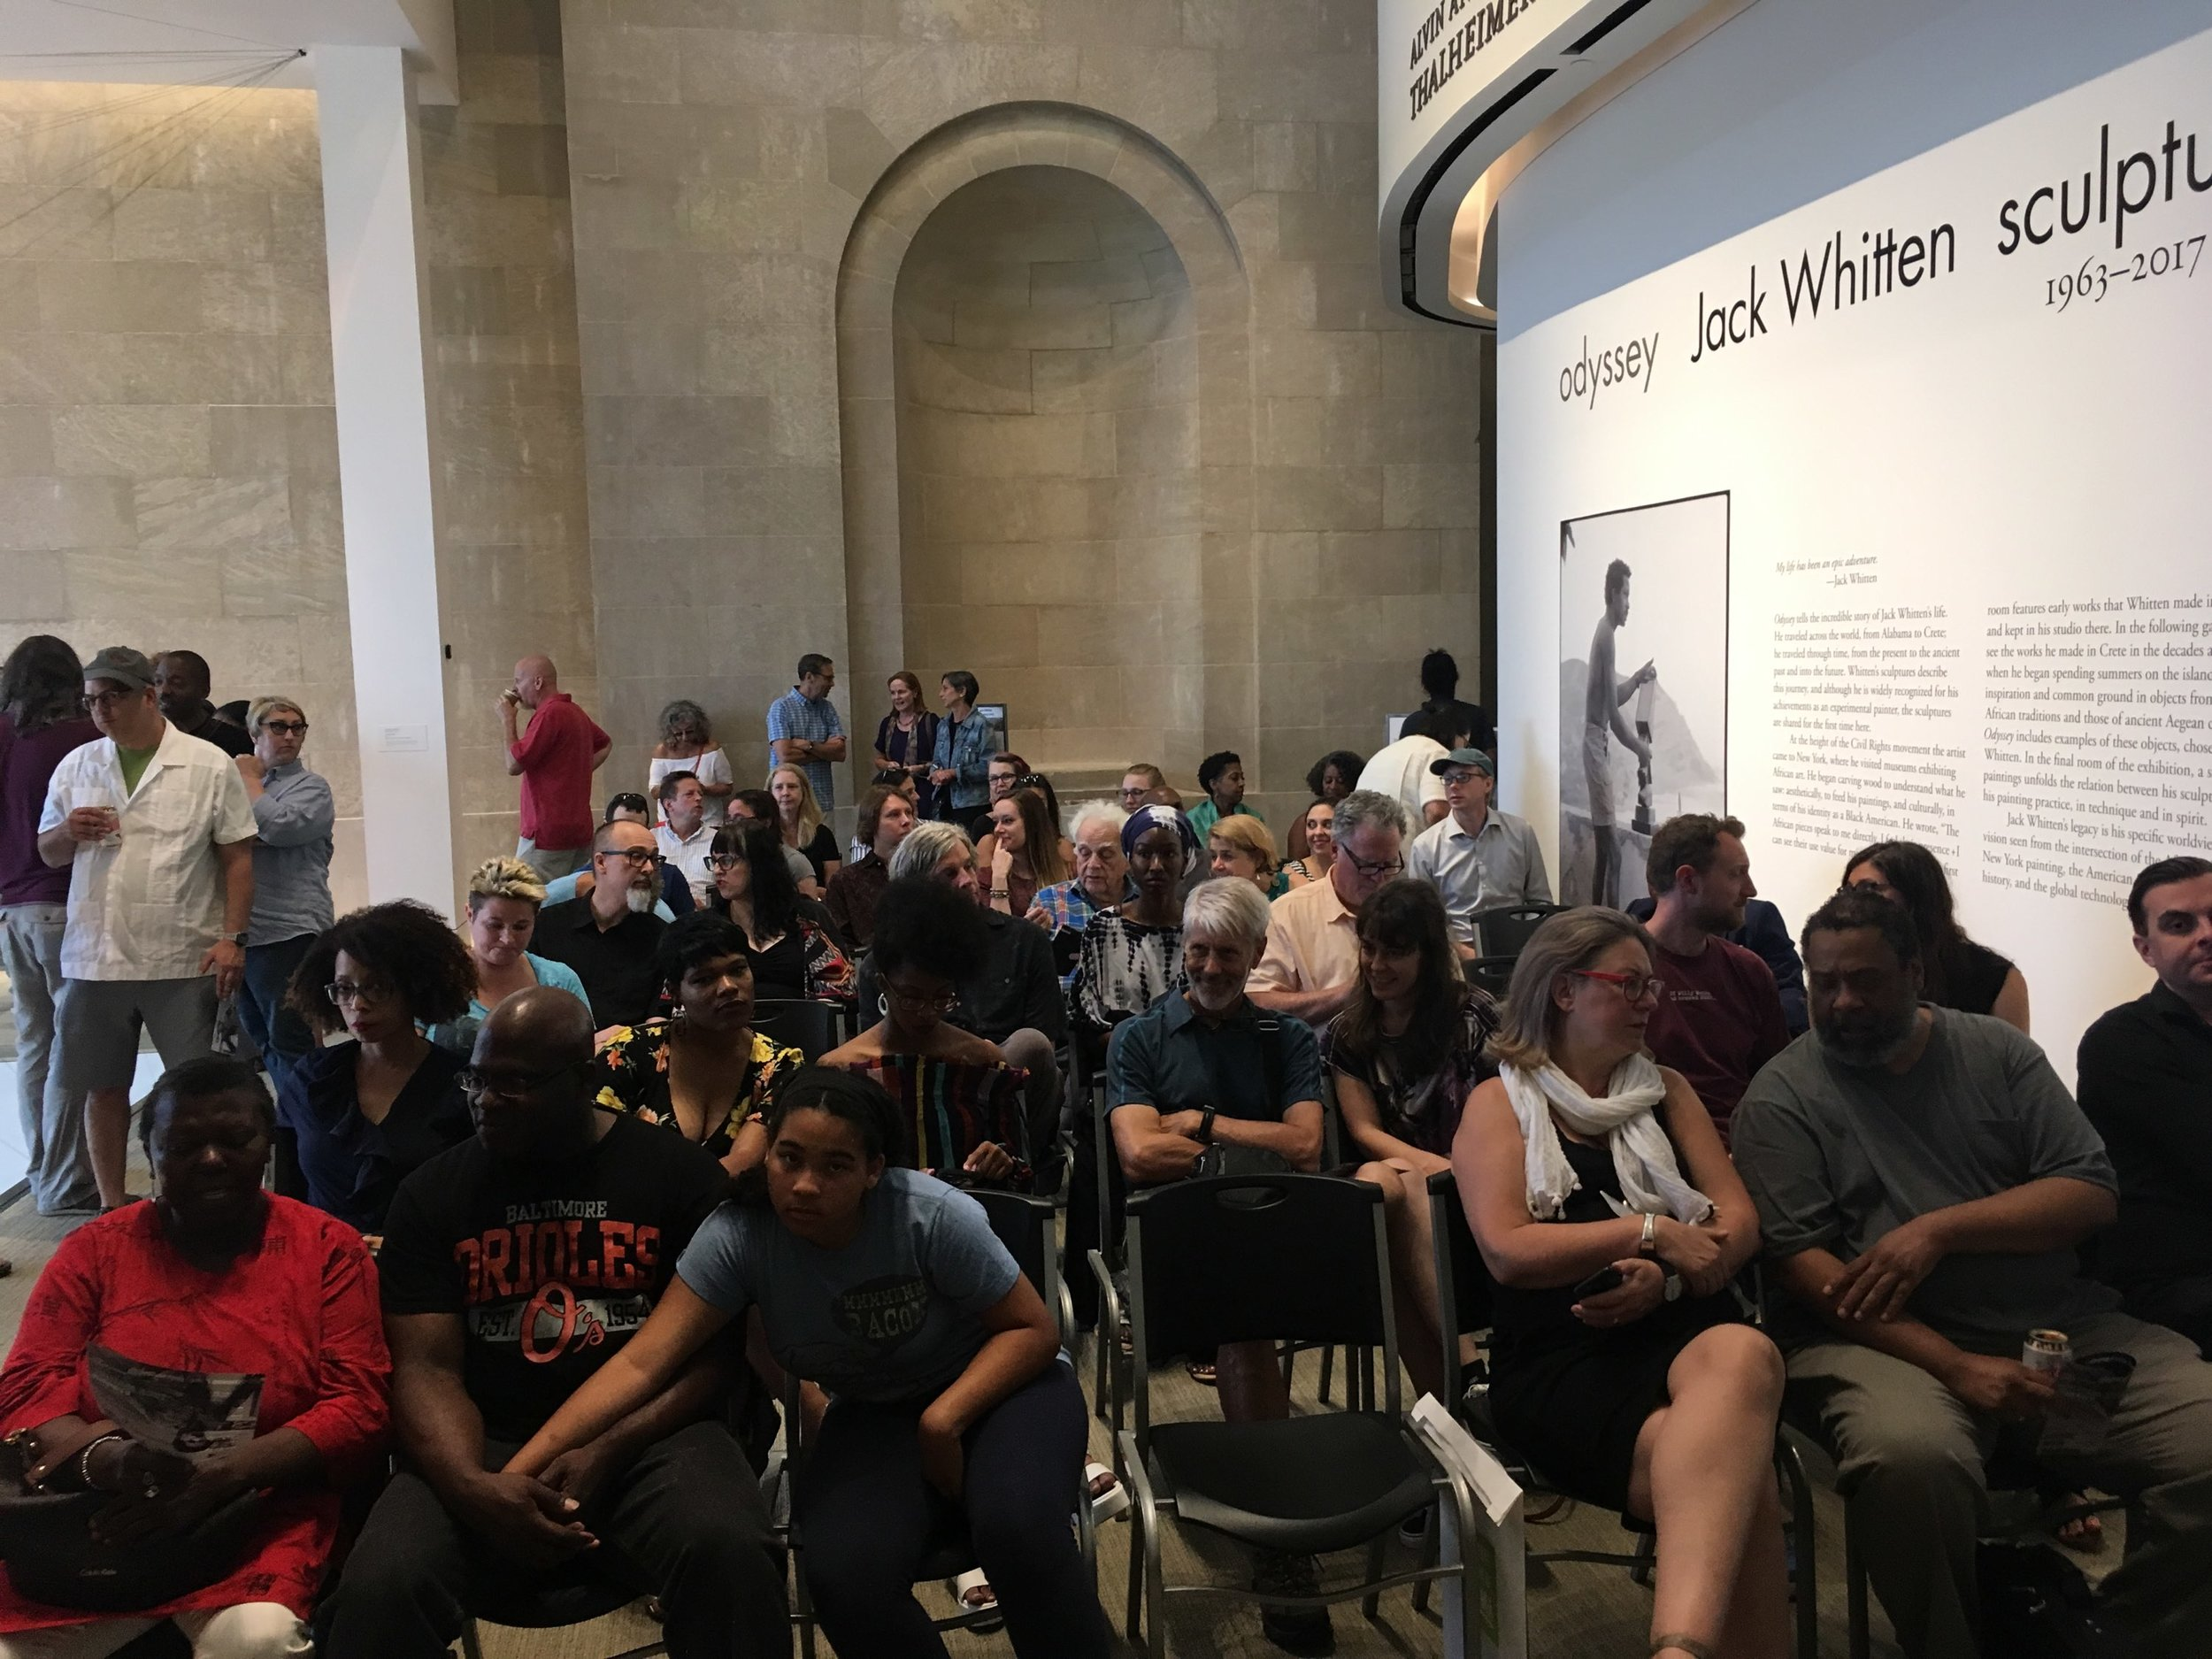 The crowd at the BMA waiting for the listening party to begin...